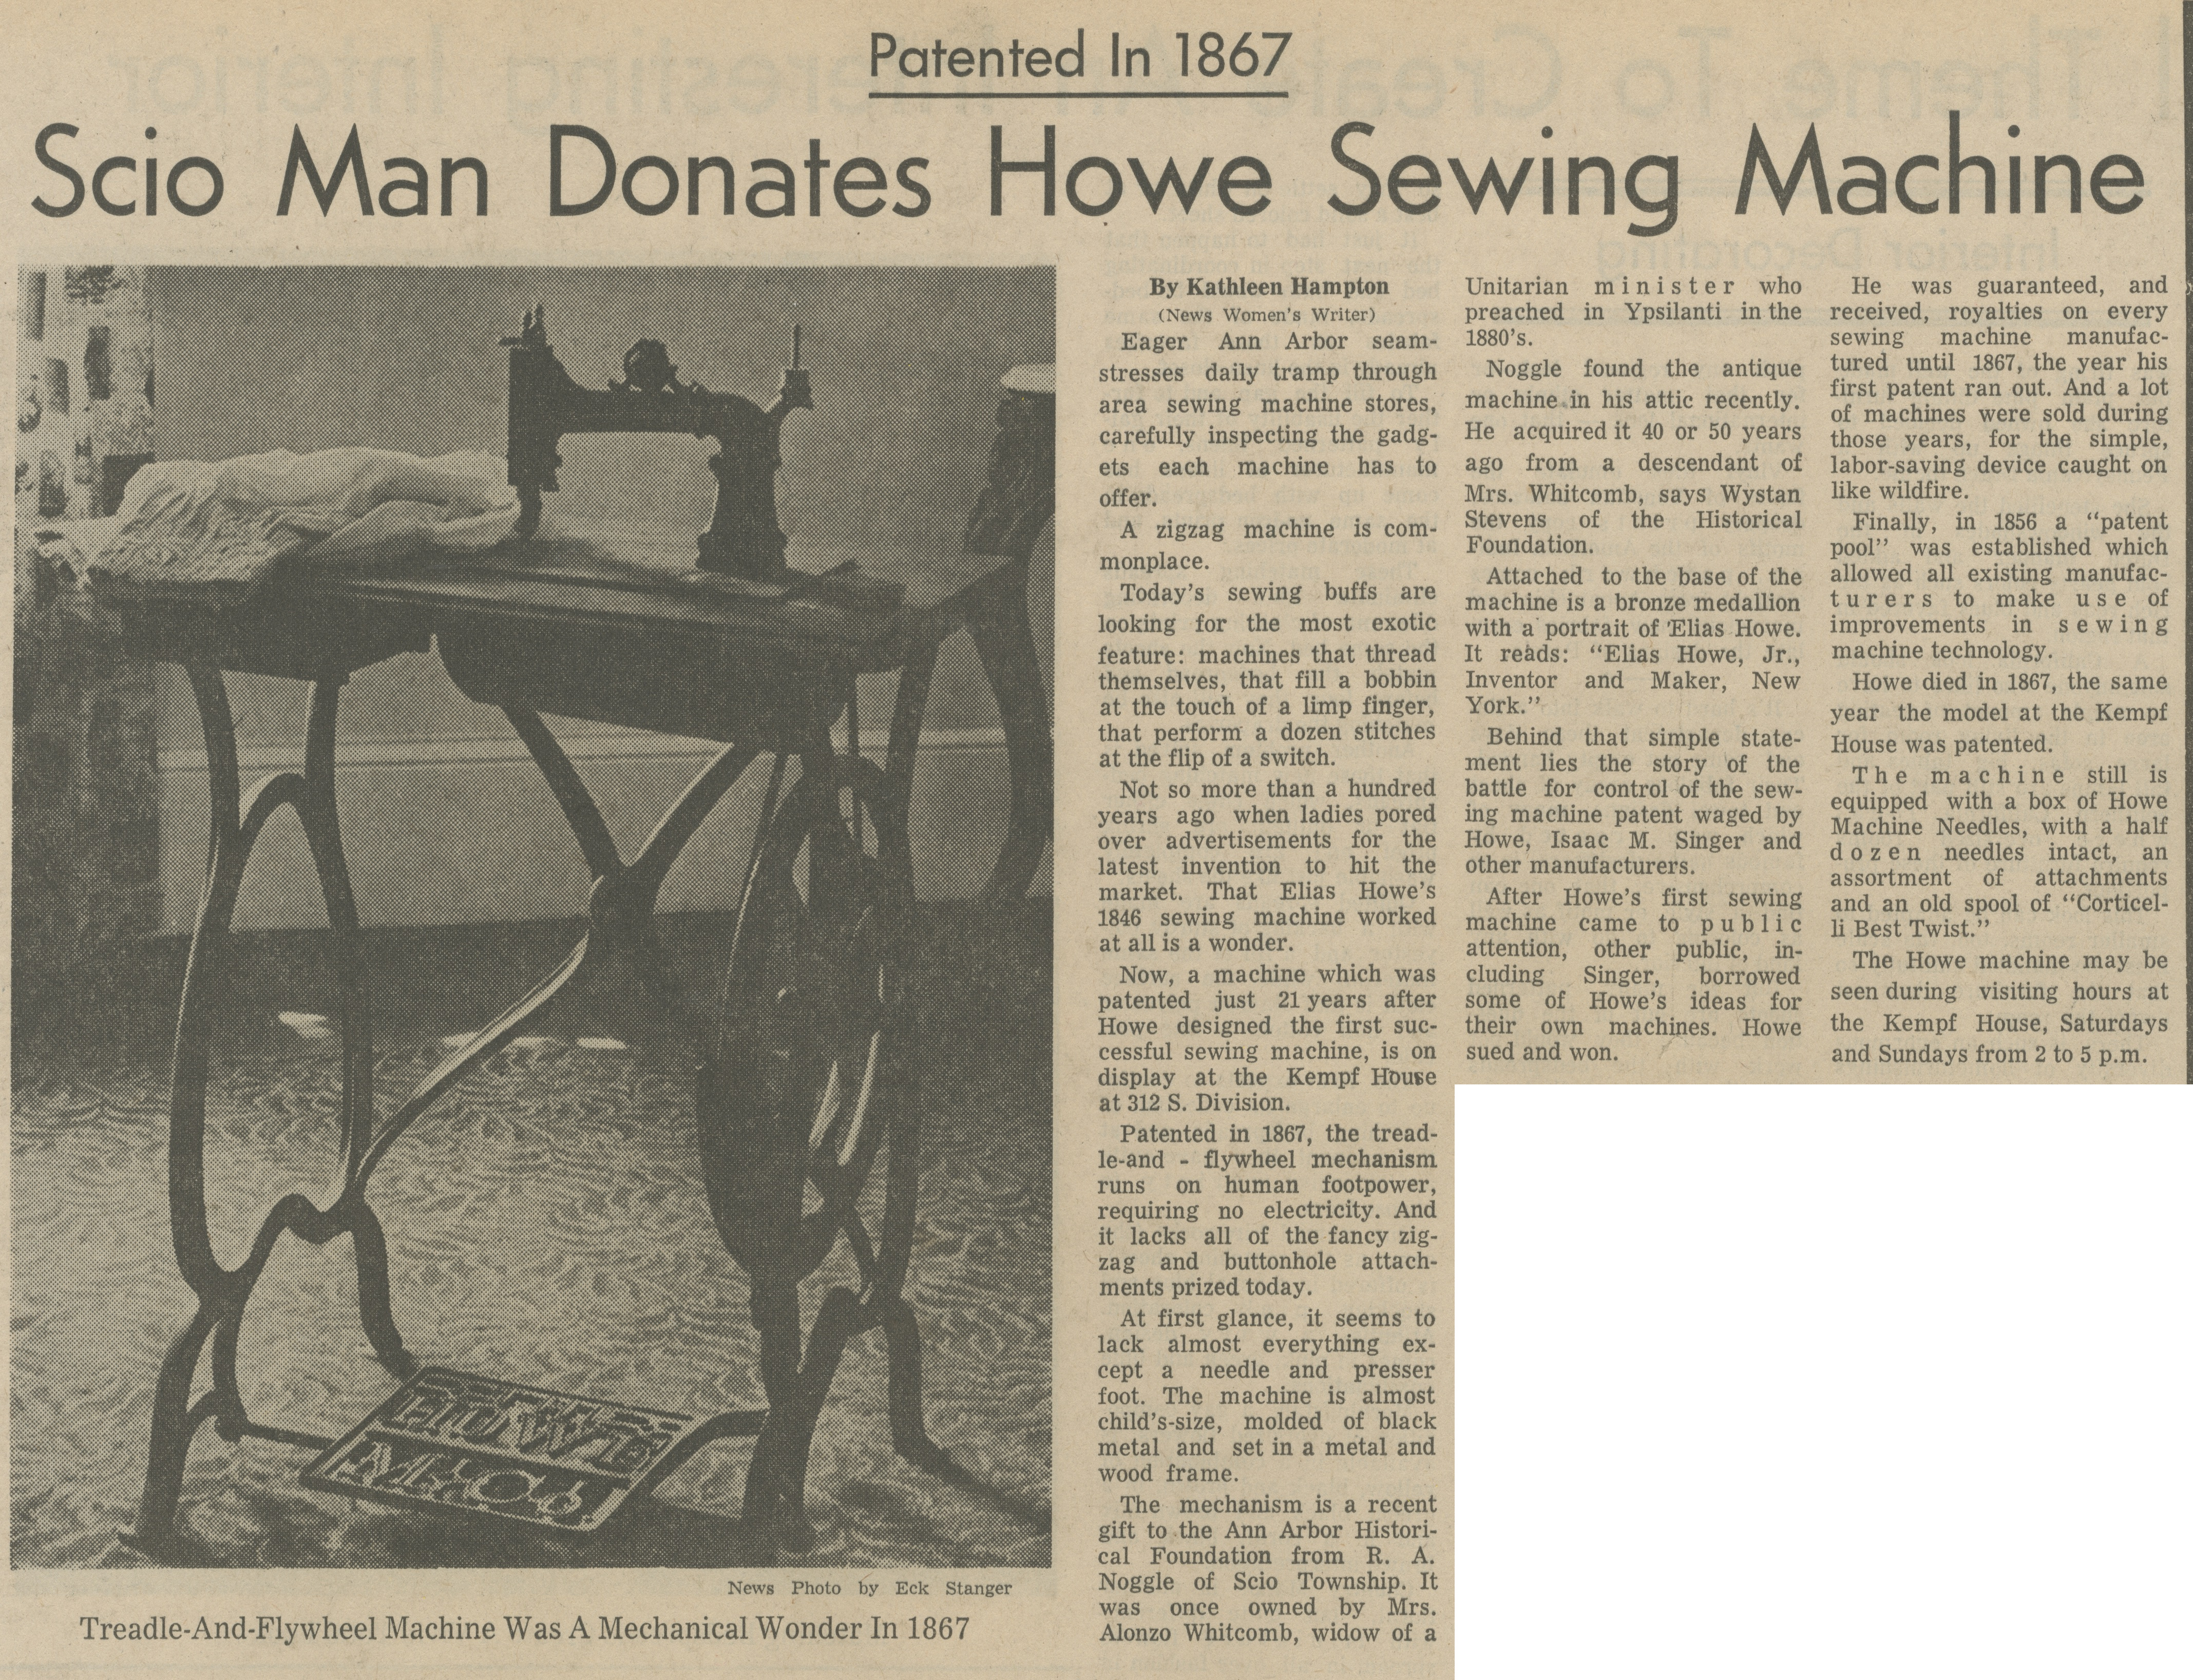 Patented In 1867 ~ Scio Man Donates Howe Sewing Machine image